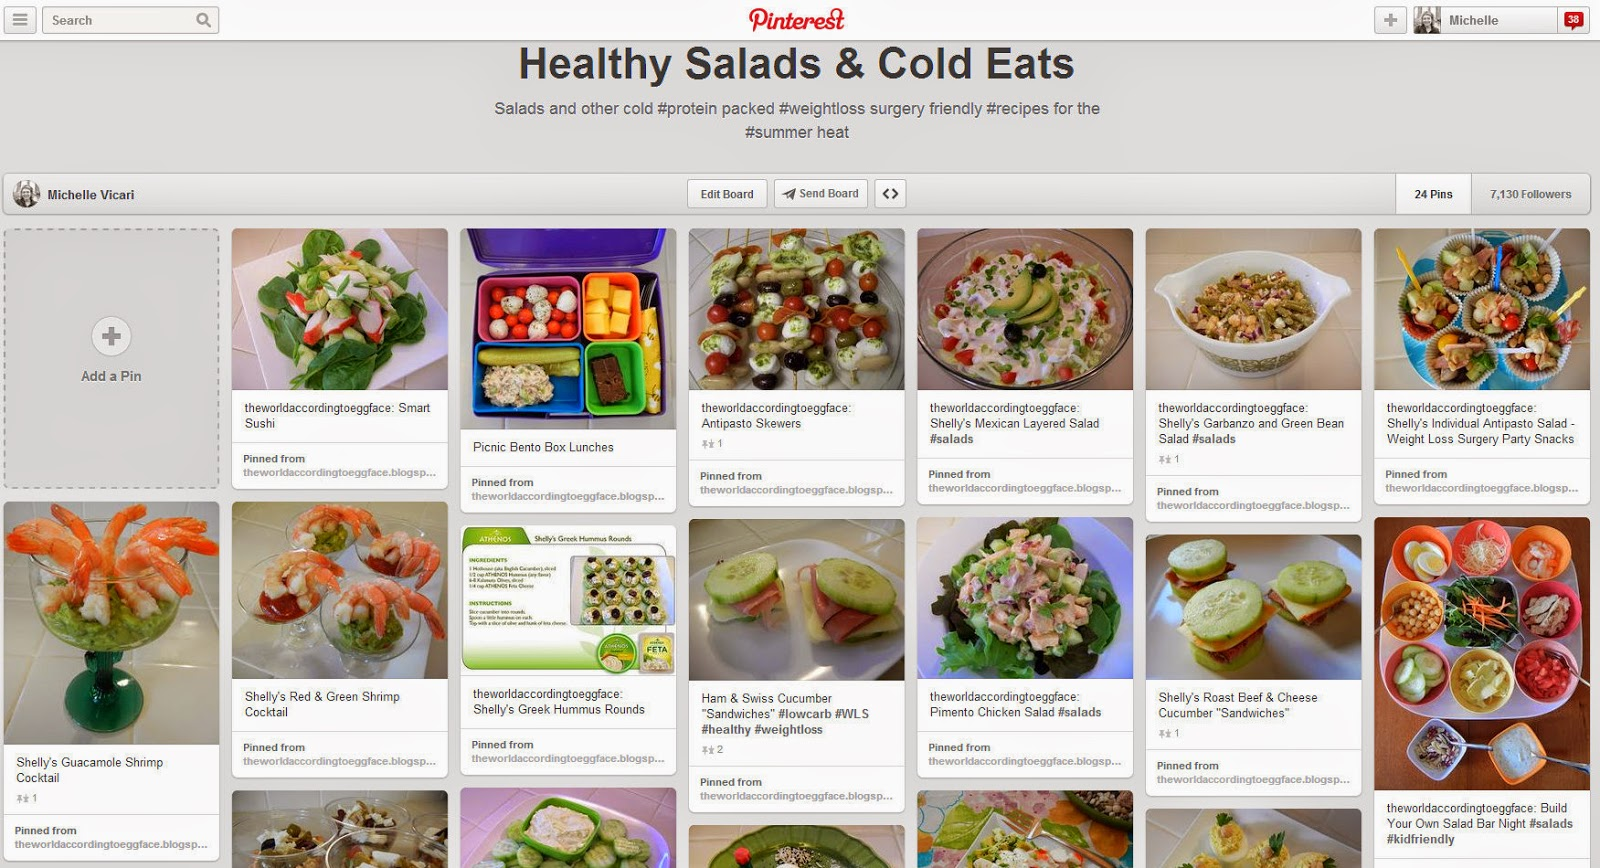 Healthy+Salads+and+Cold+Eats+Pinterest+Page Weight Loss Recipes Eggface Healthy Salads and Cold Eats Pinterest Page